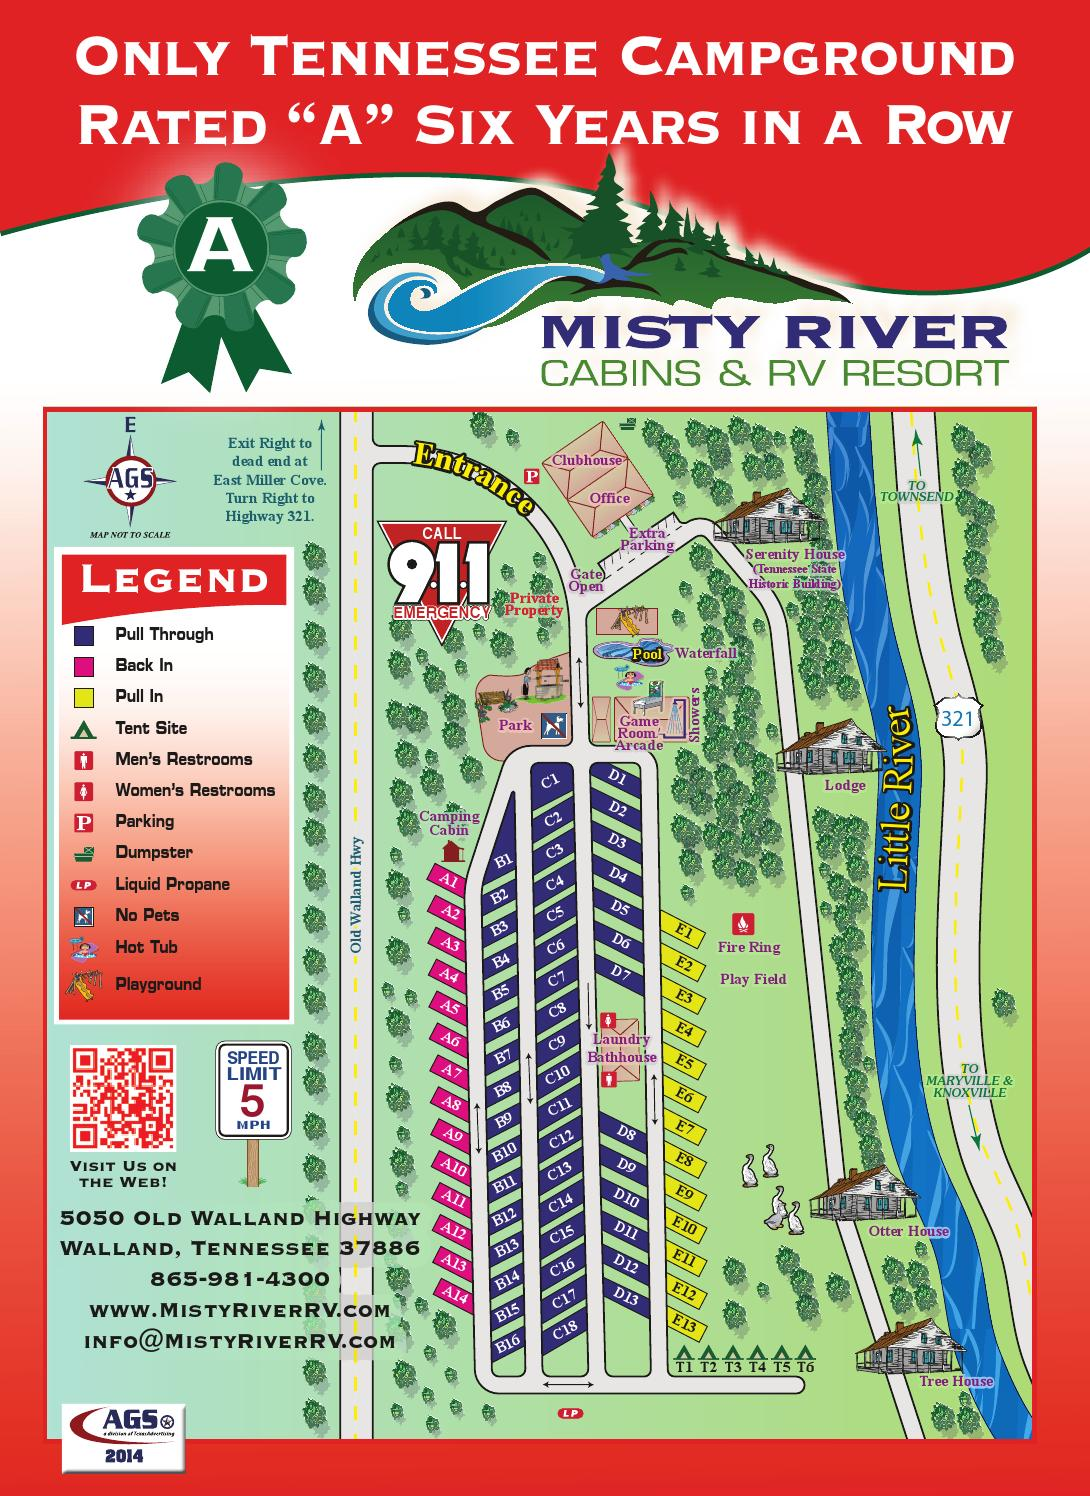 Misty River Cabins Amp Rv Resort By Ags Texas Advertising